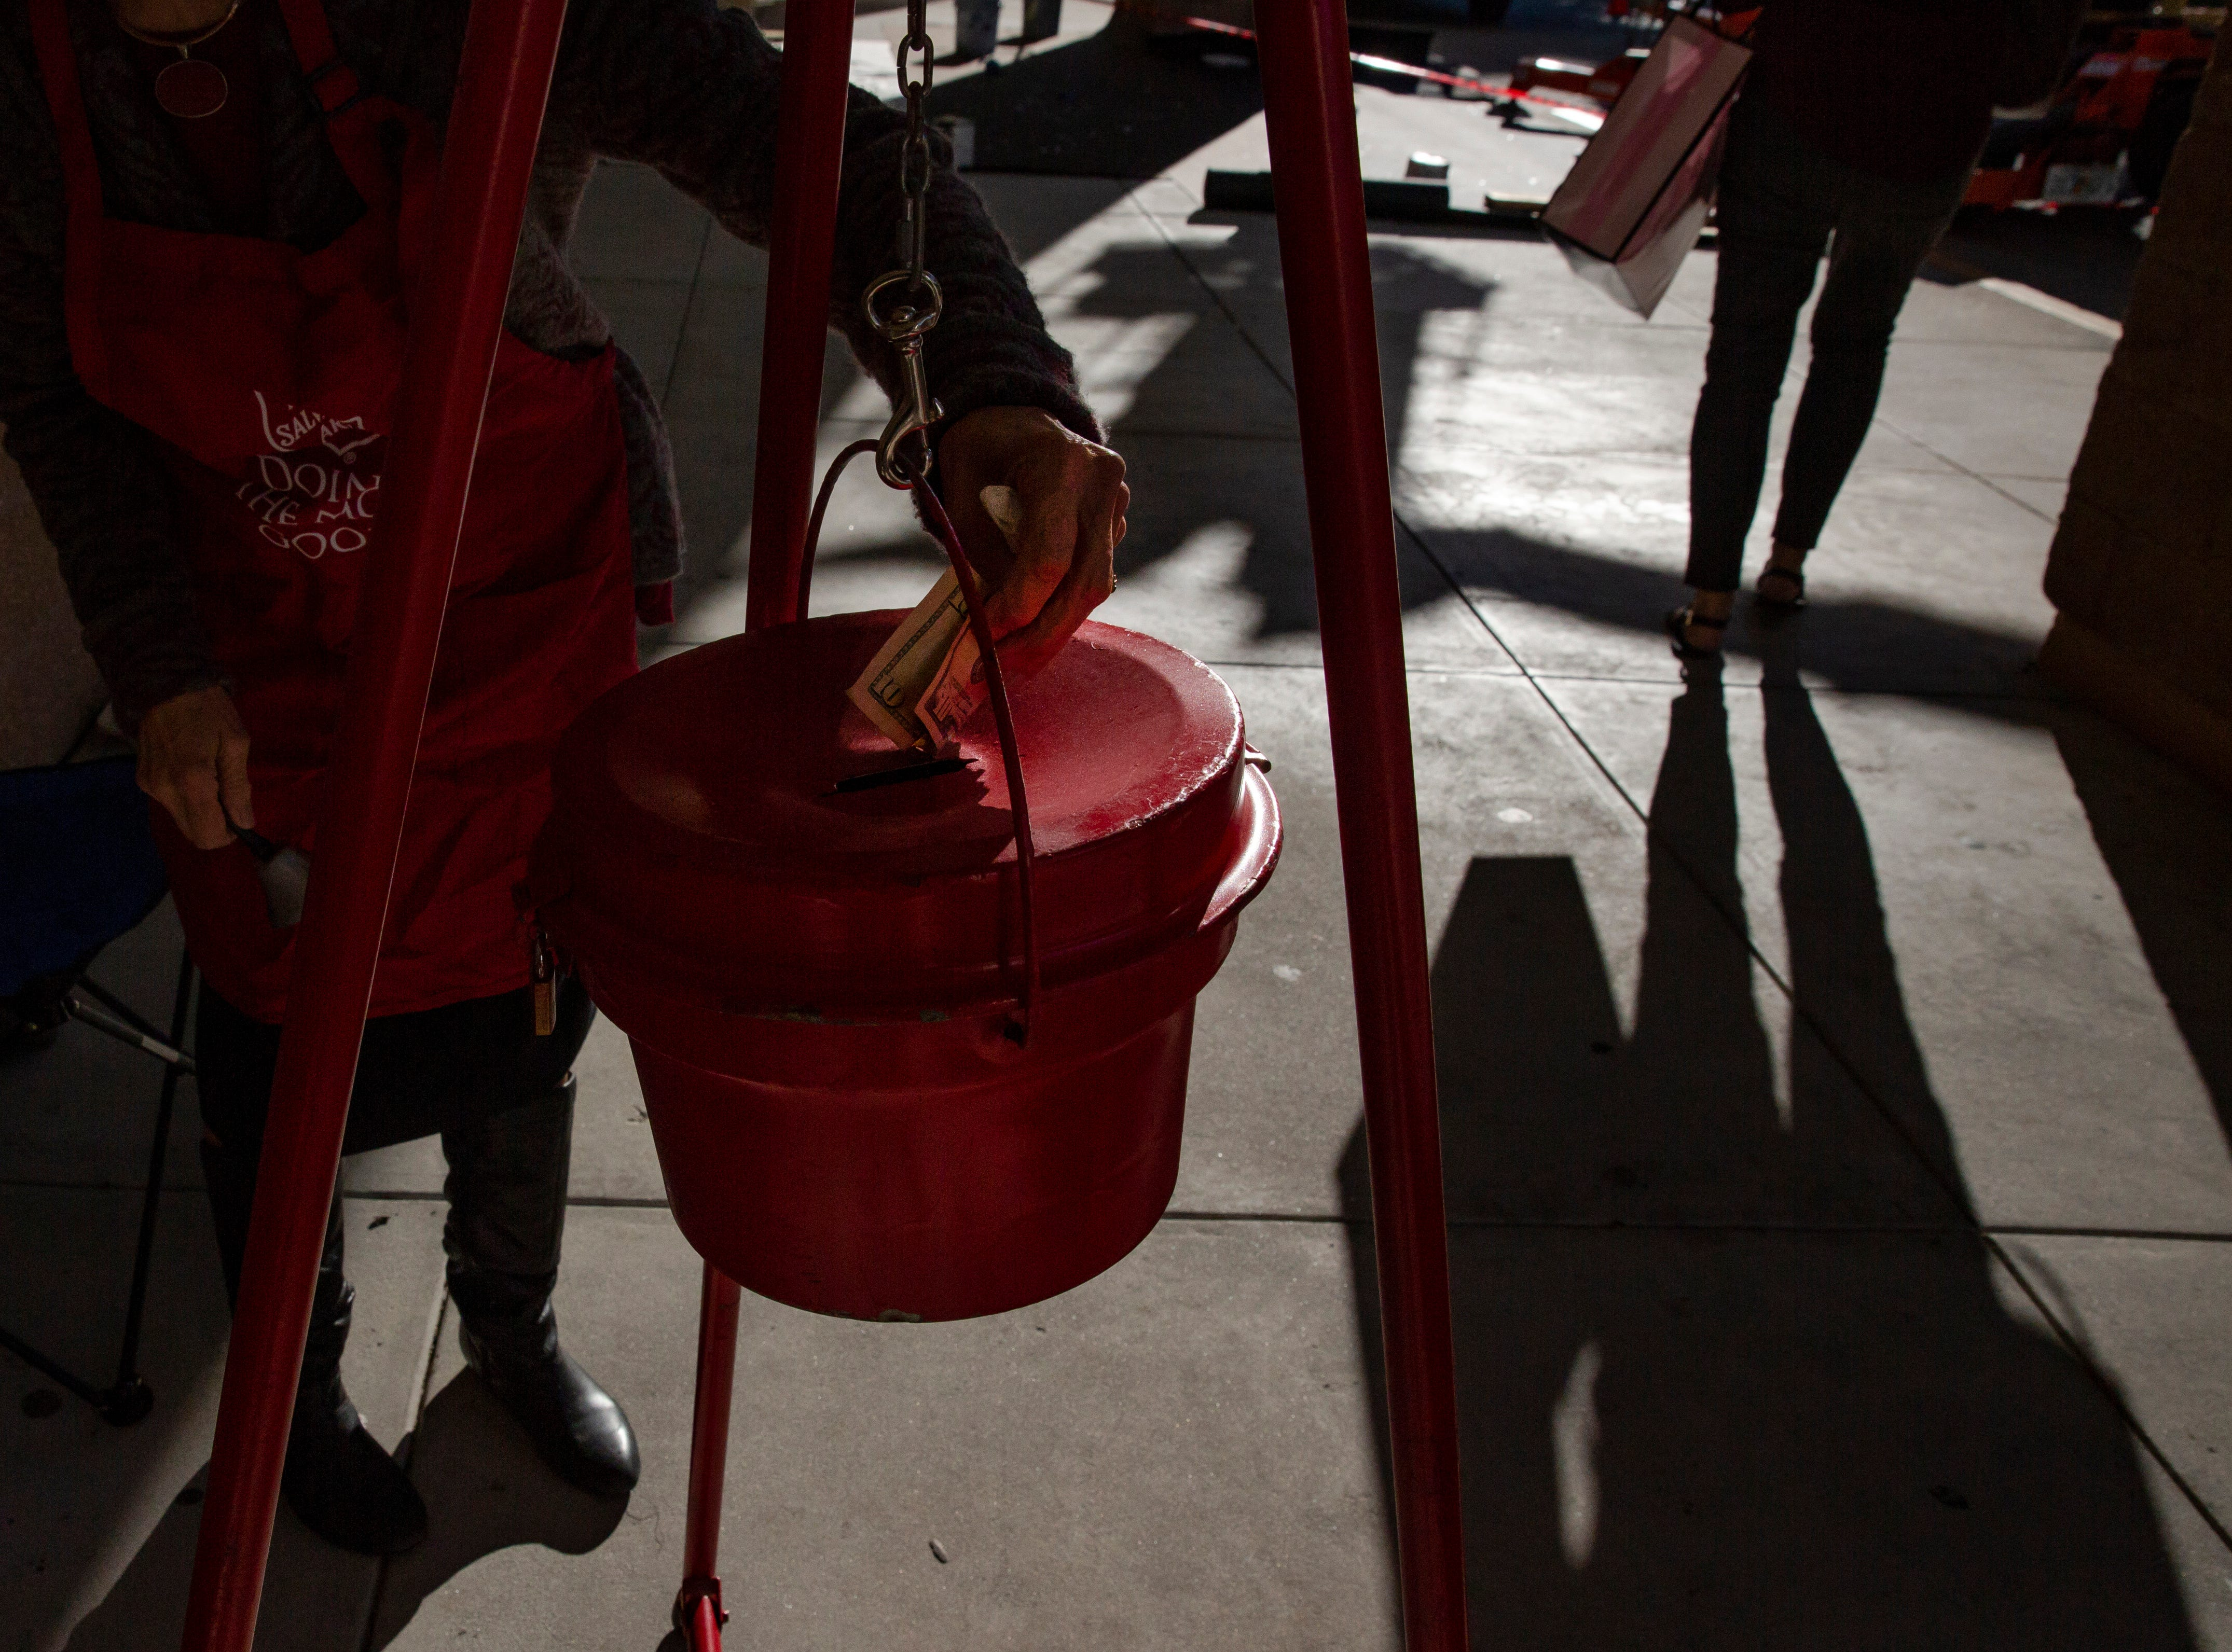 Daily News reporter Harriet Heithaus places a $10 bill in the Salvation Army kettle, after it was handed to her by a stranger exiting Coastland Center mall  on Nov. 28.